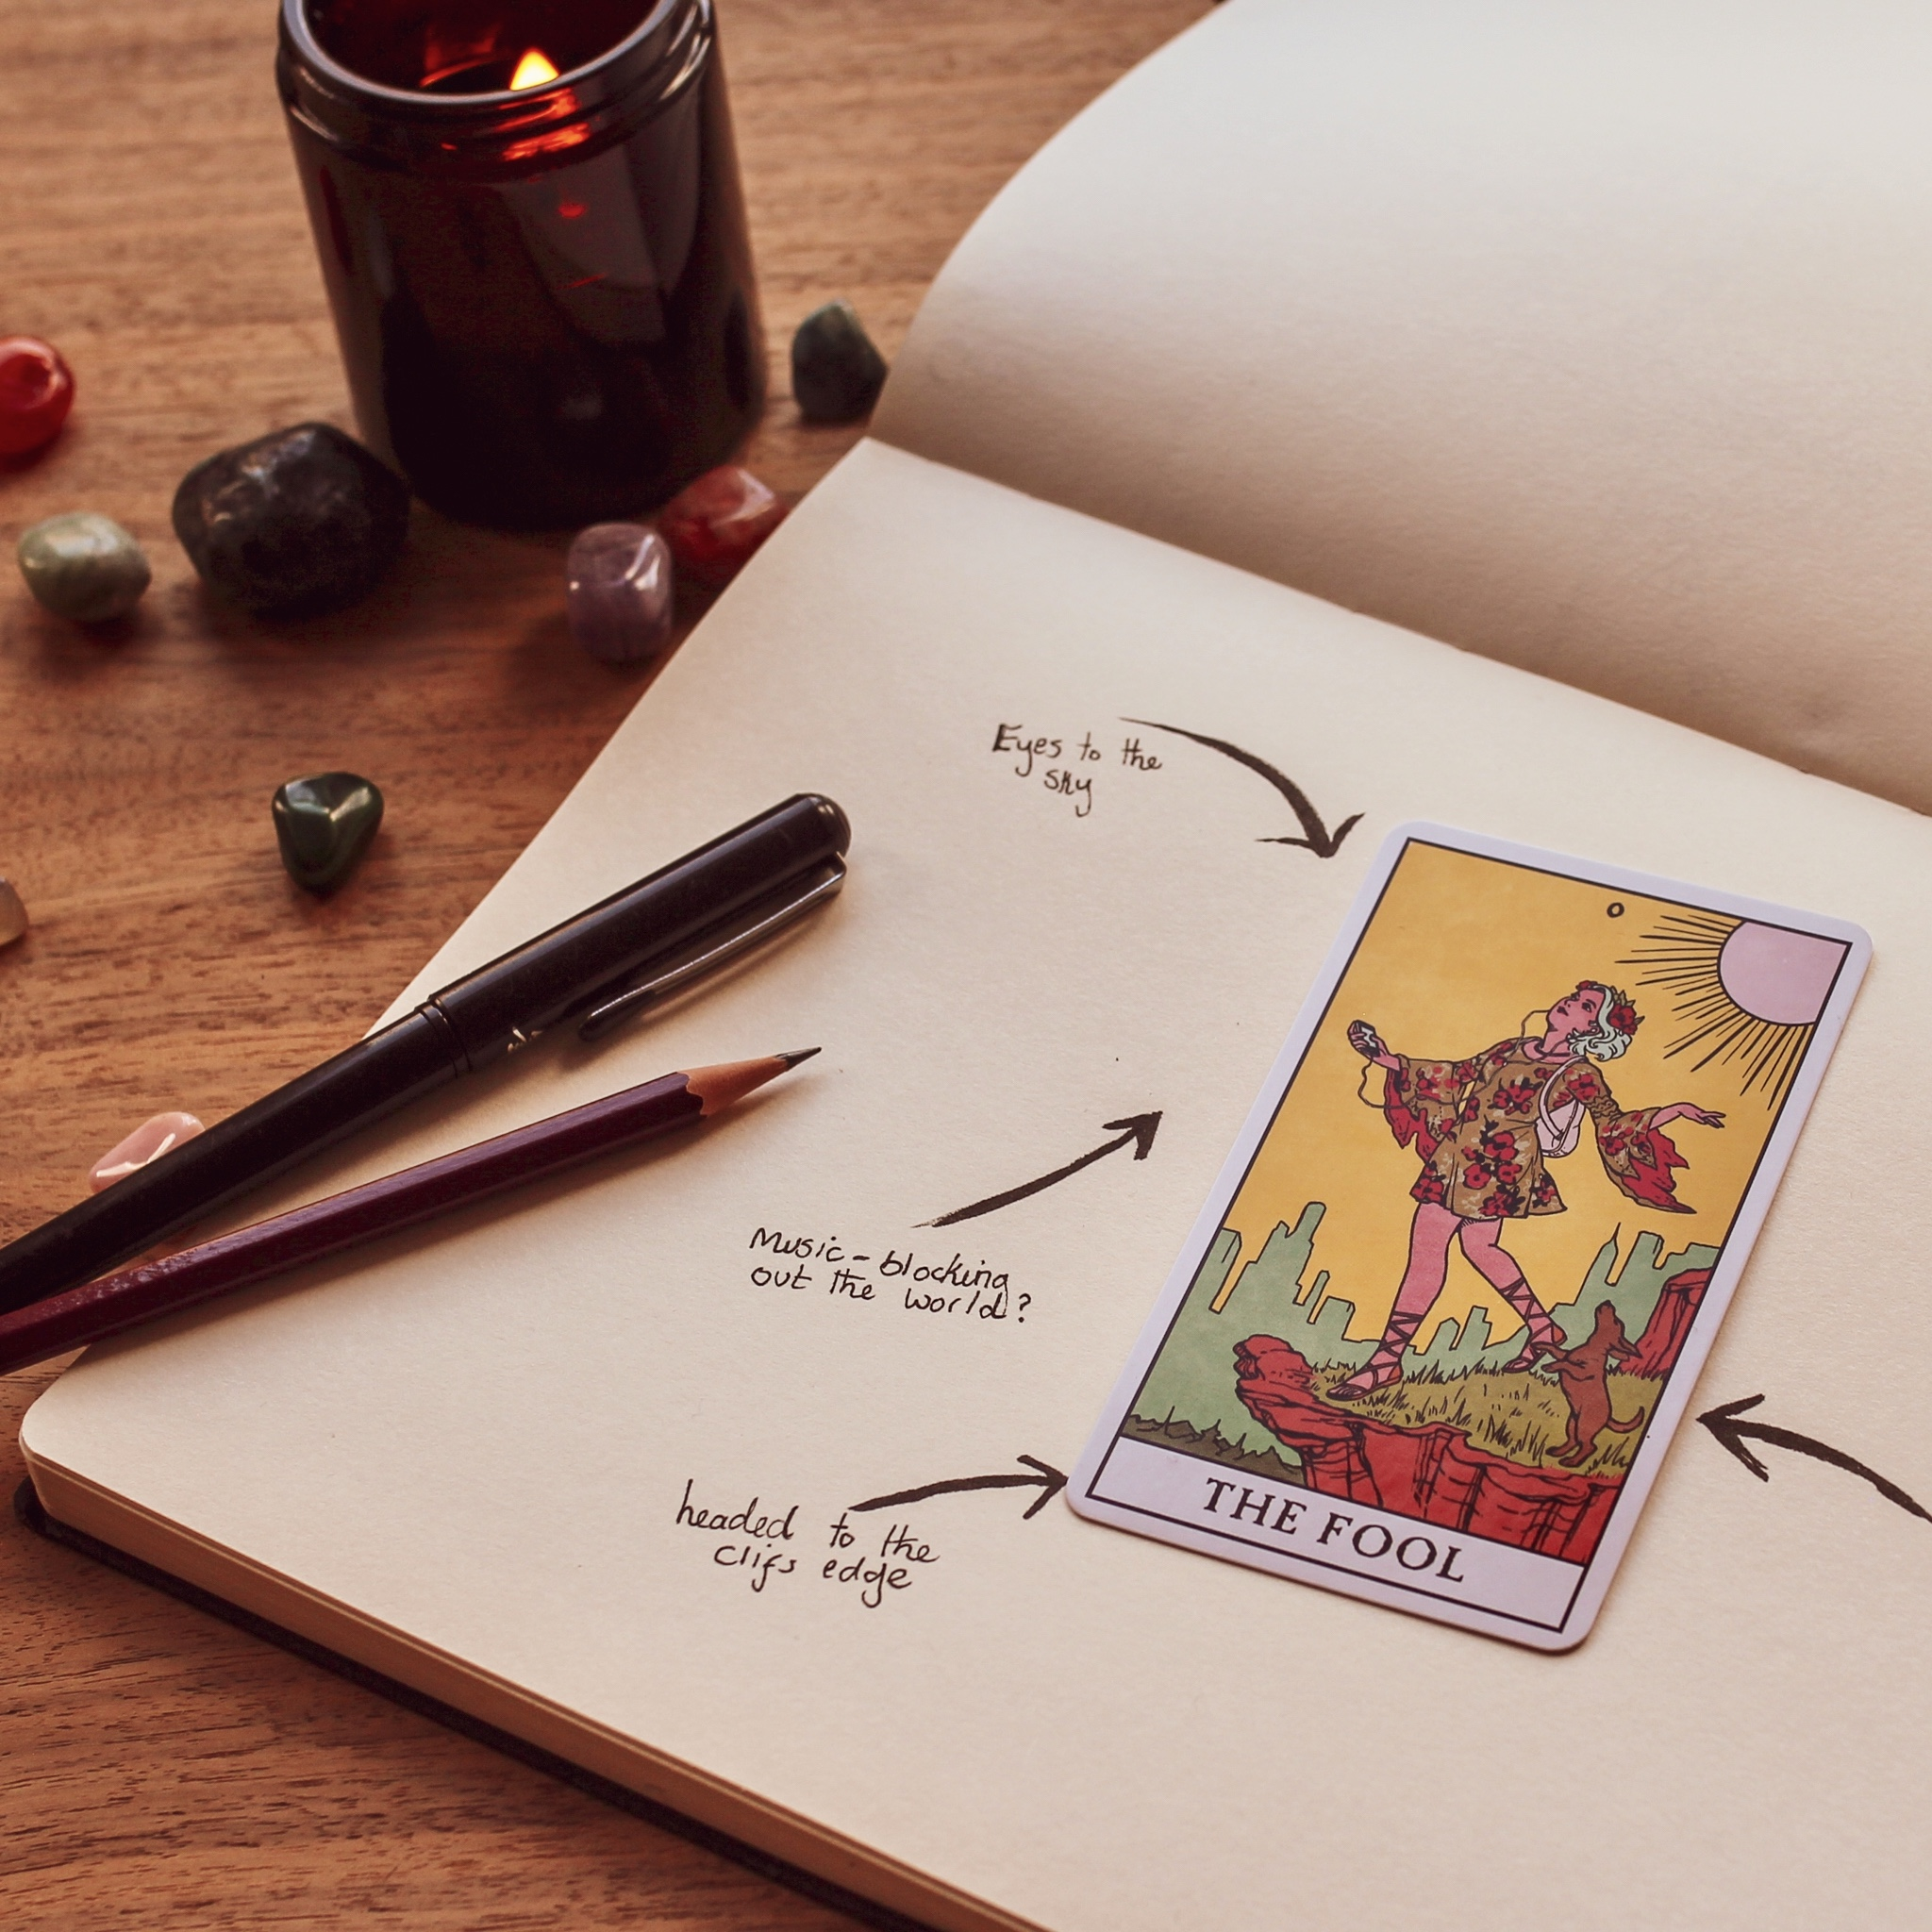 The Fool tarot card with notes about its symbolism